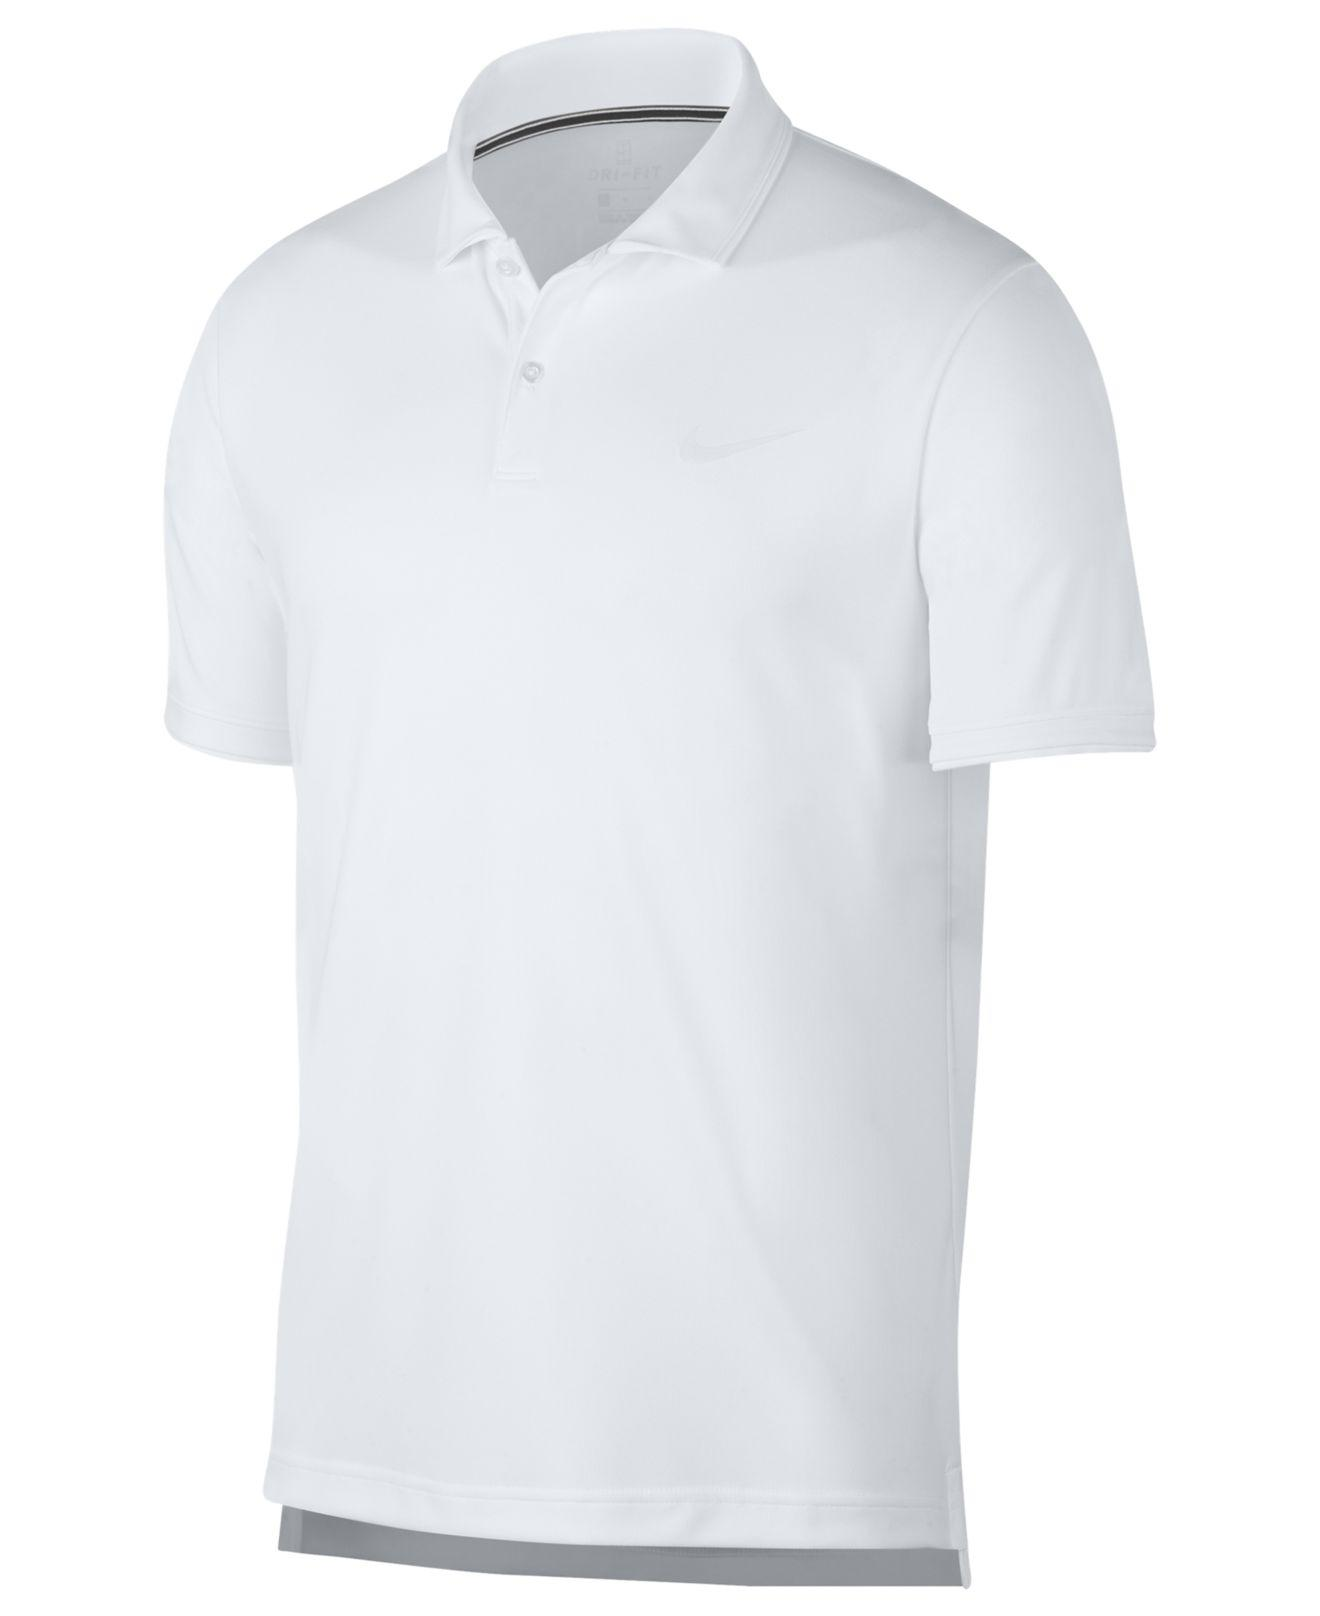 a44783bd28ef Lyst - Nike Court Dri-fit Team Tennis Polo in White for Men